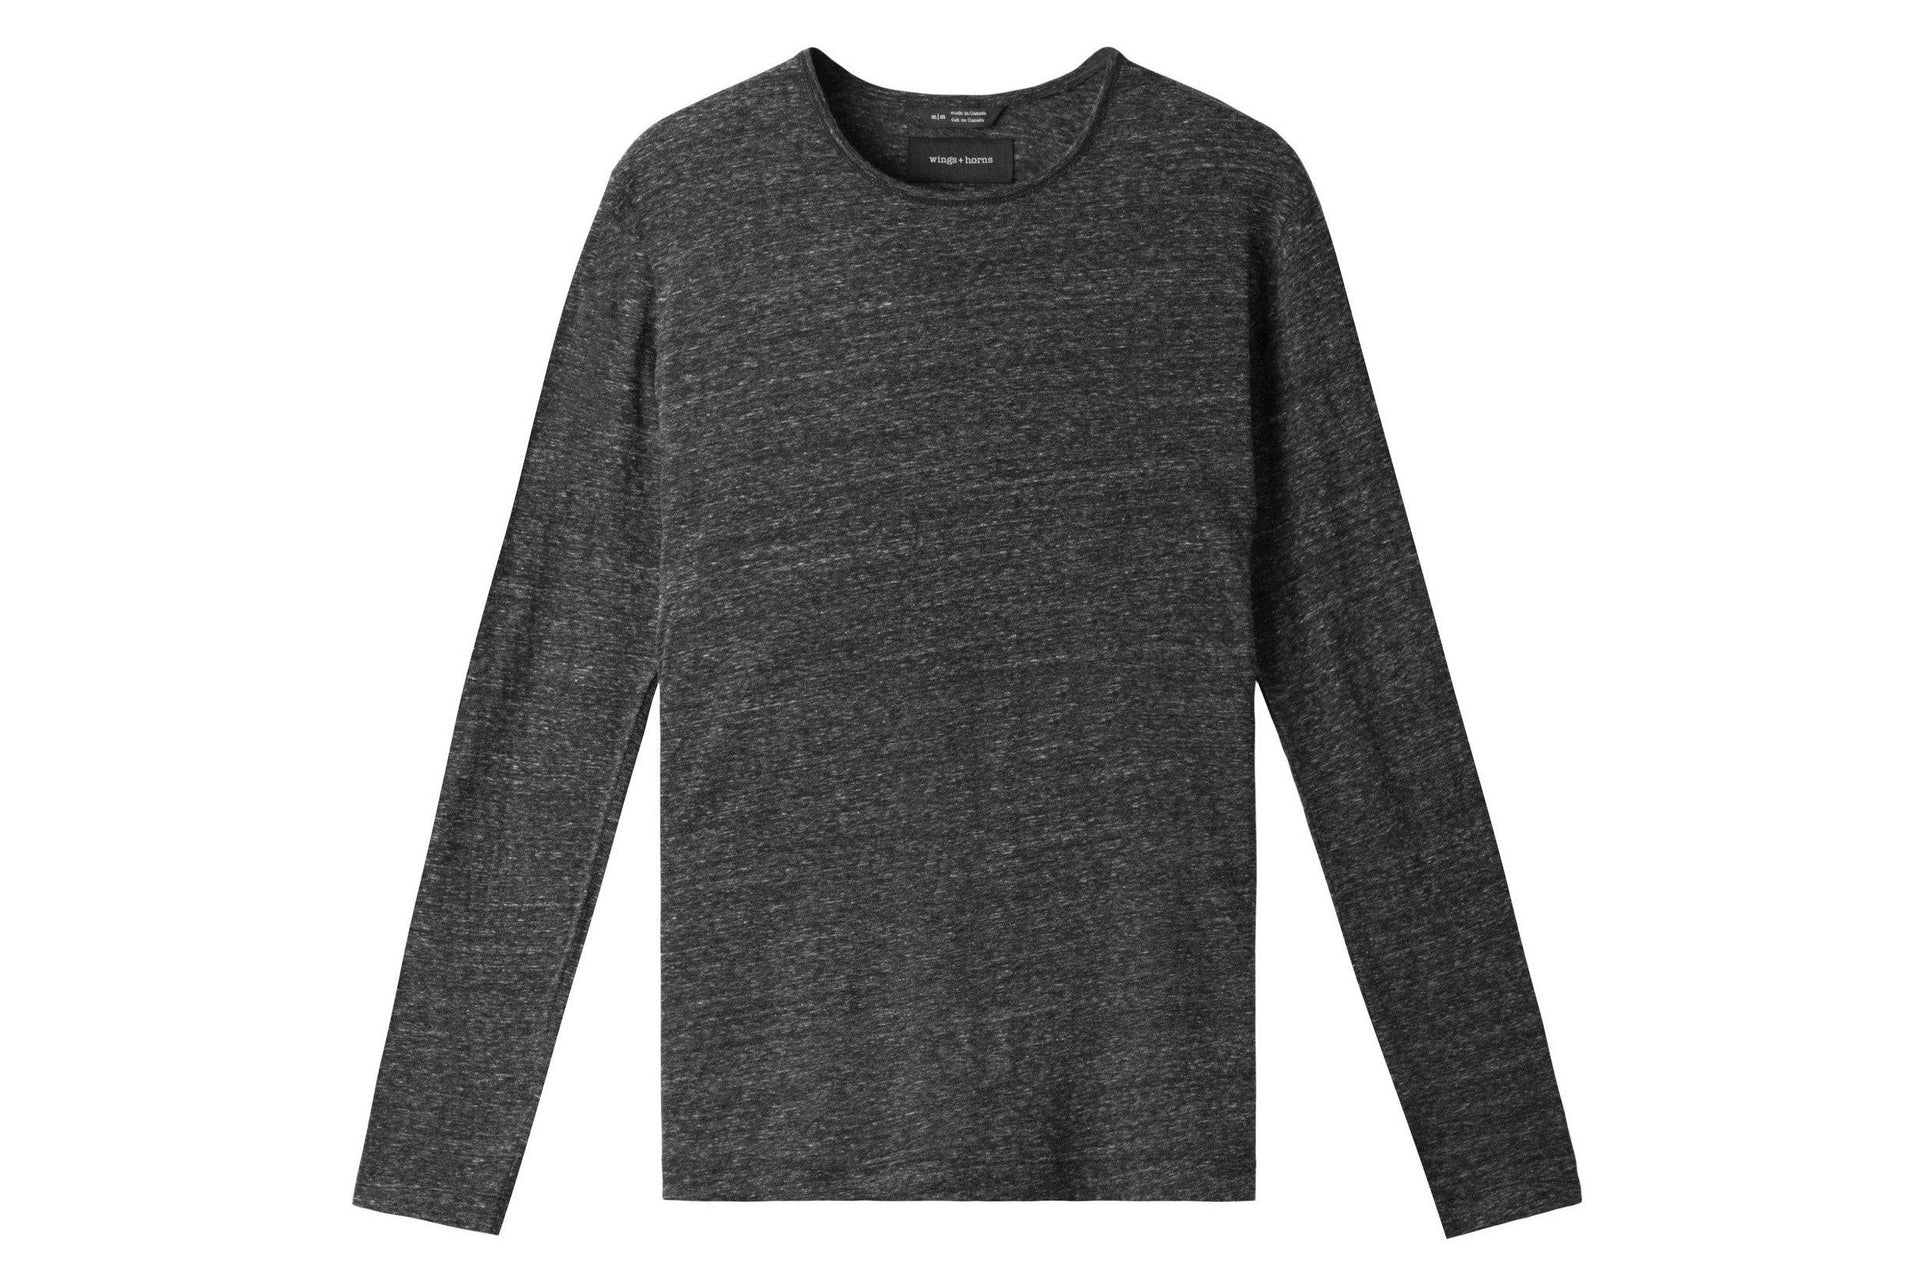 KNIT SPLASH JERSEY L/S MENS SOFTGOODS WINGS+HORNS H.BLACK S